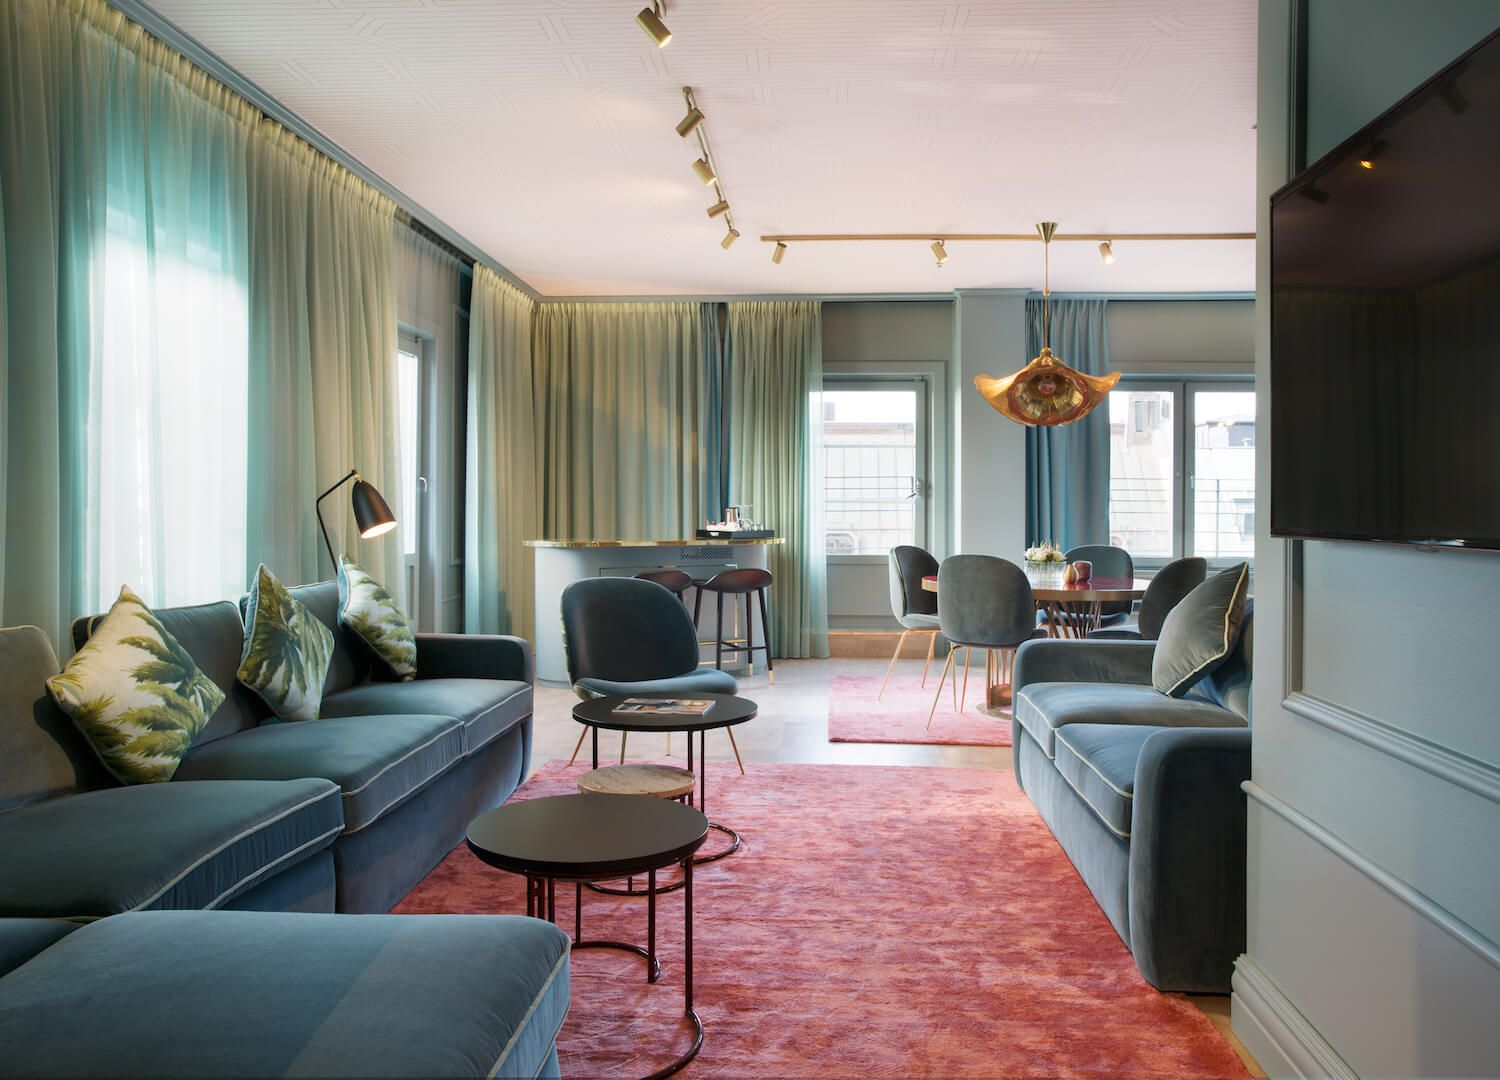 Bright color pop inspo love those curtains haymarket hotel est living stories